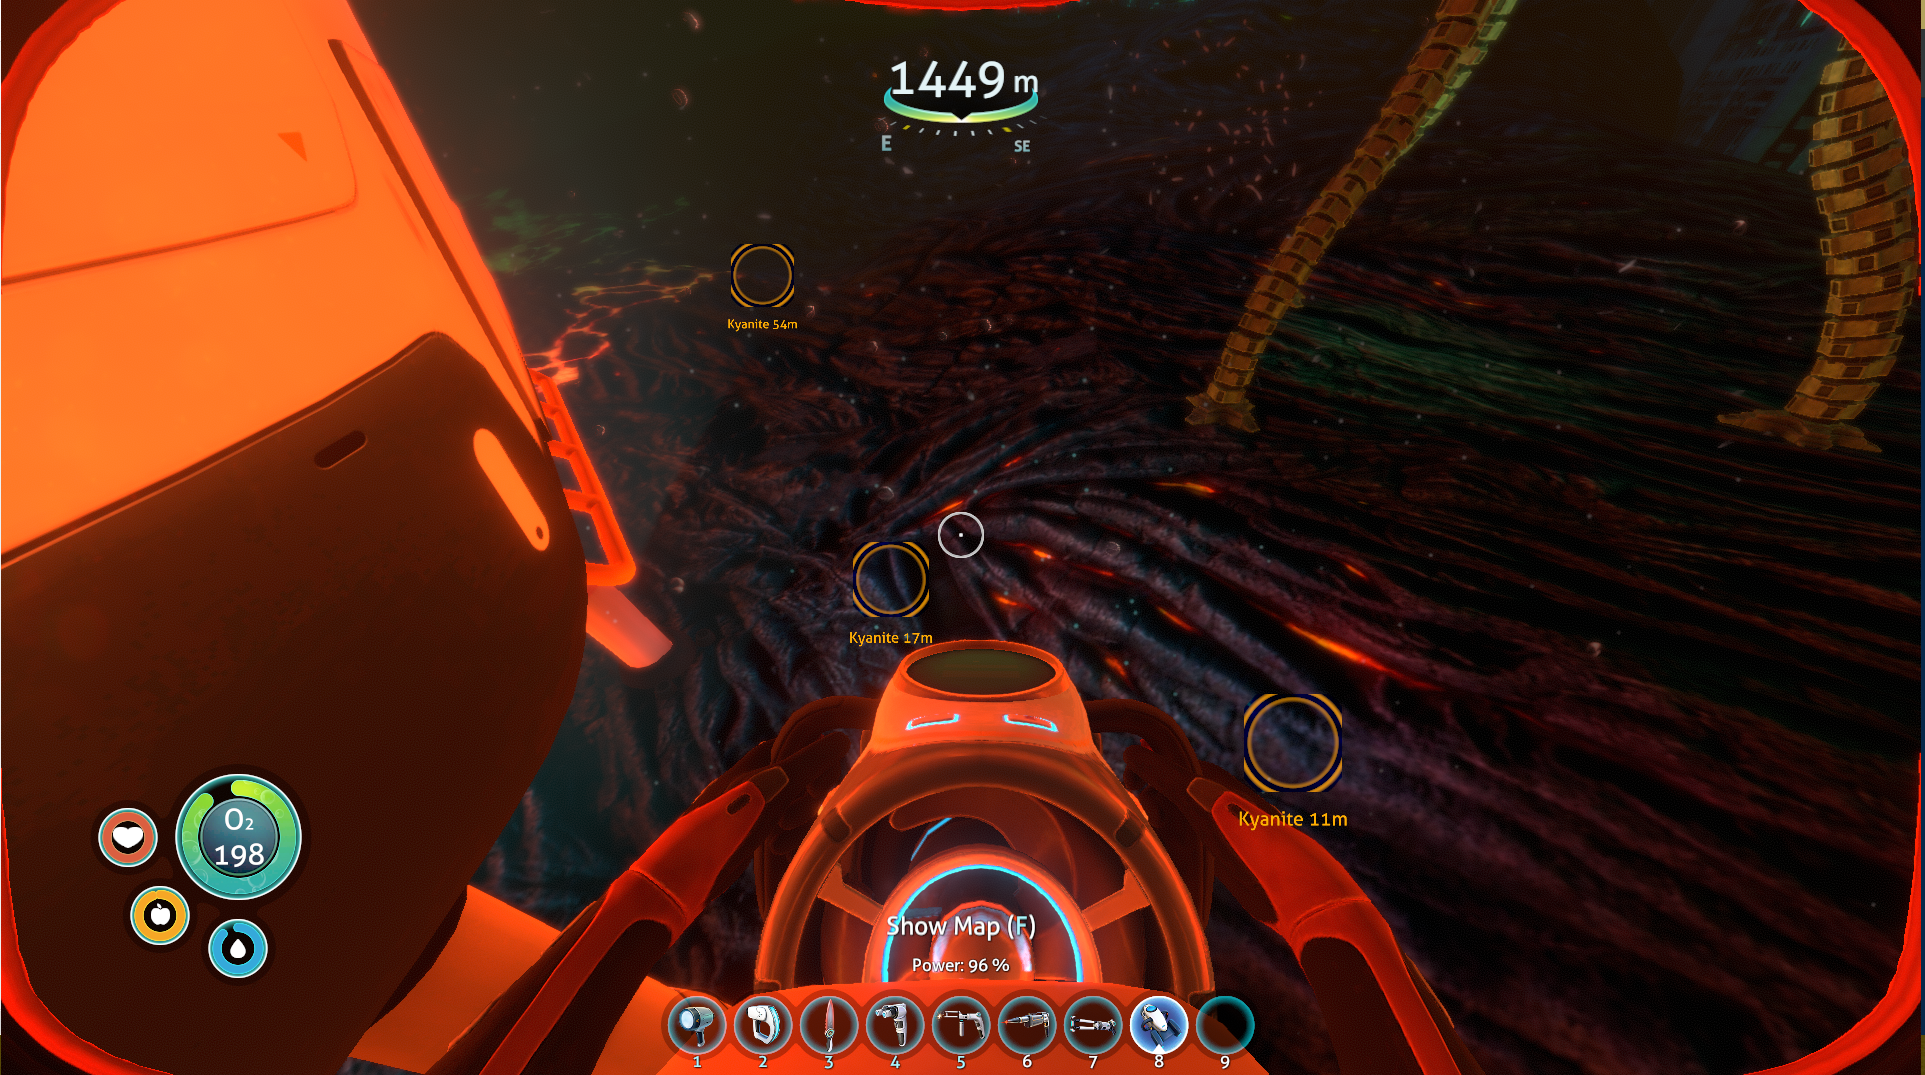 Scanner Blips Are Still Not Working Correctly Very Disappointing Unknown Worlds Forums Hey all, today we go looking for magnetite and try to get the hud chip. scanner blips are still not working